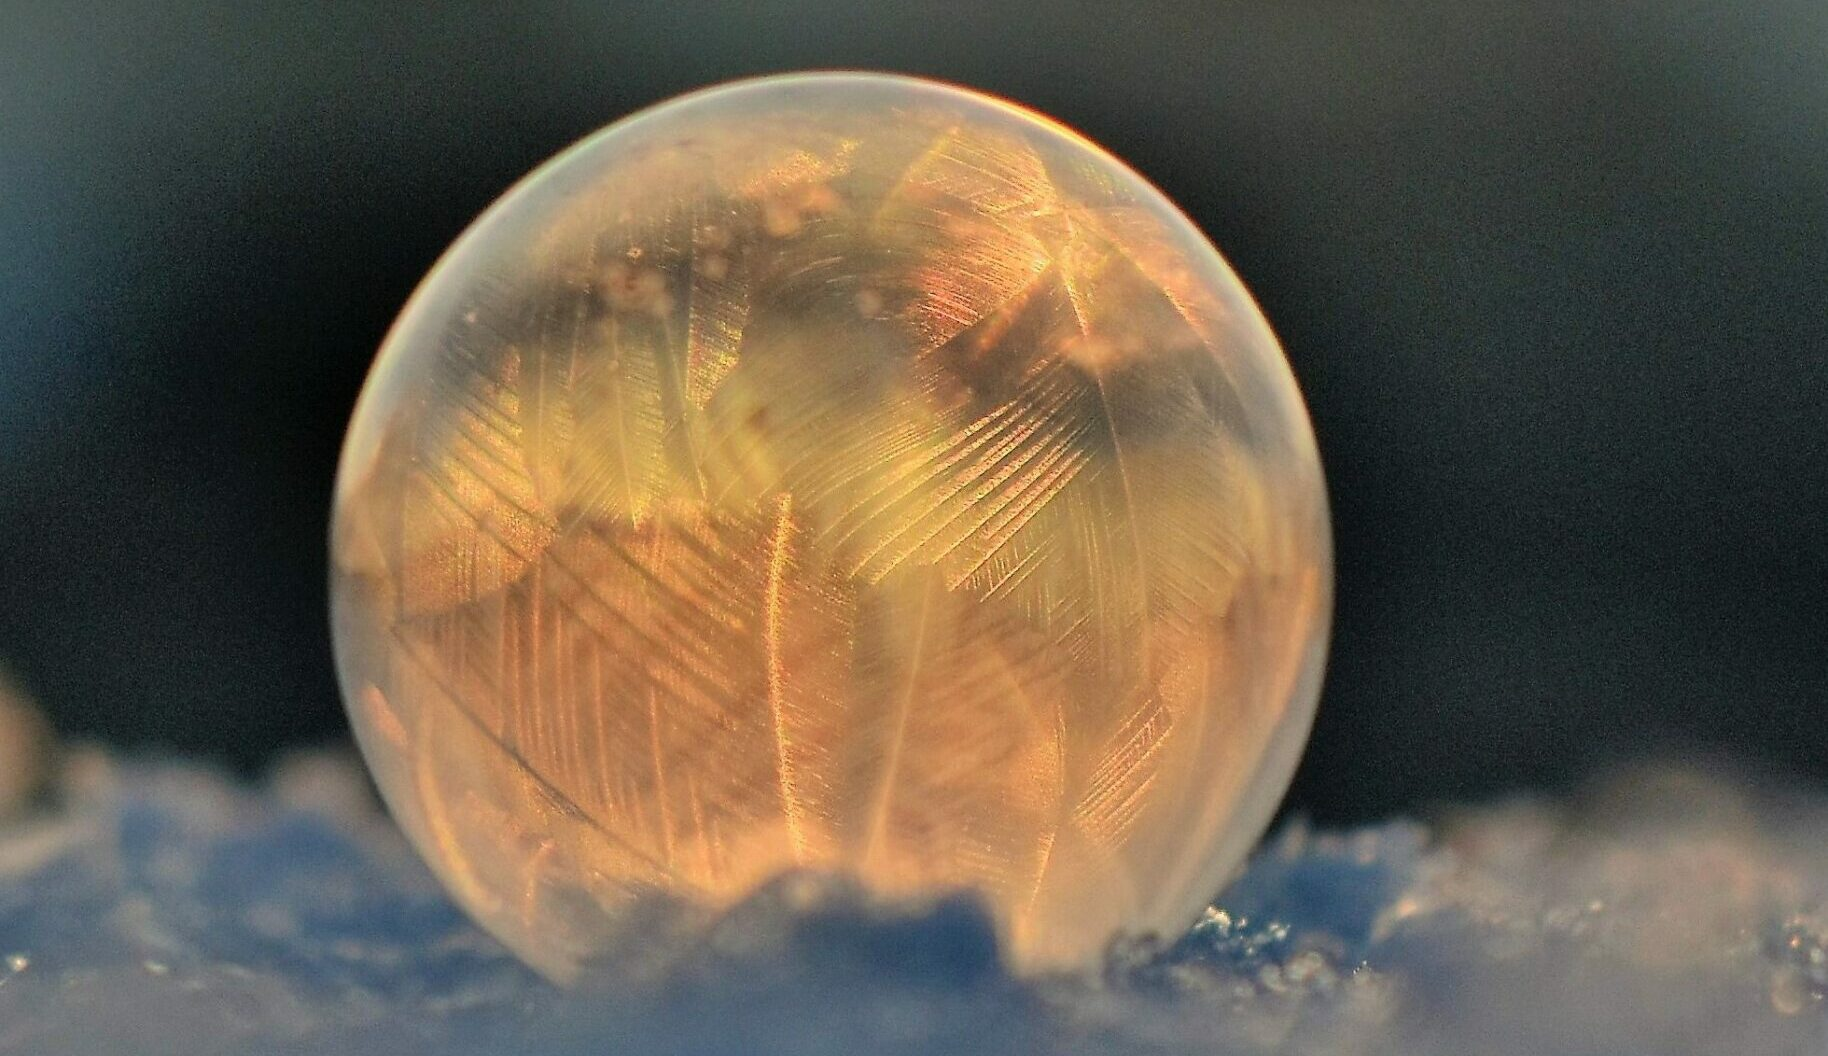 frozen-soap-bubble-against-sky-during-sunset